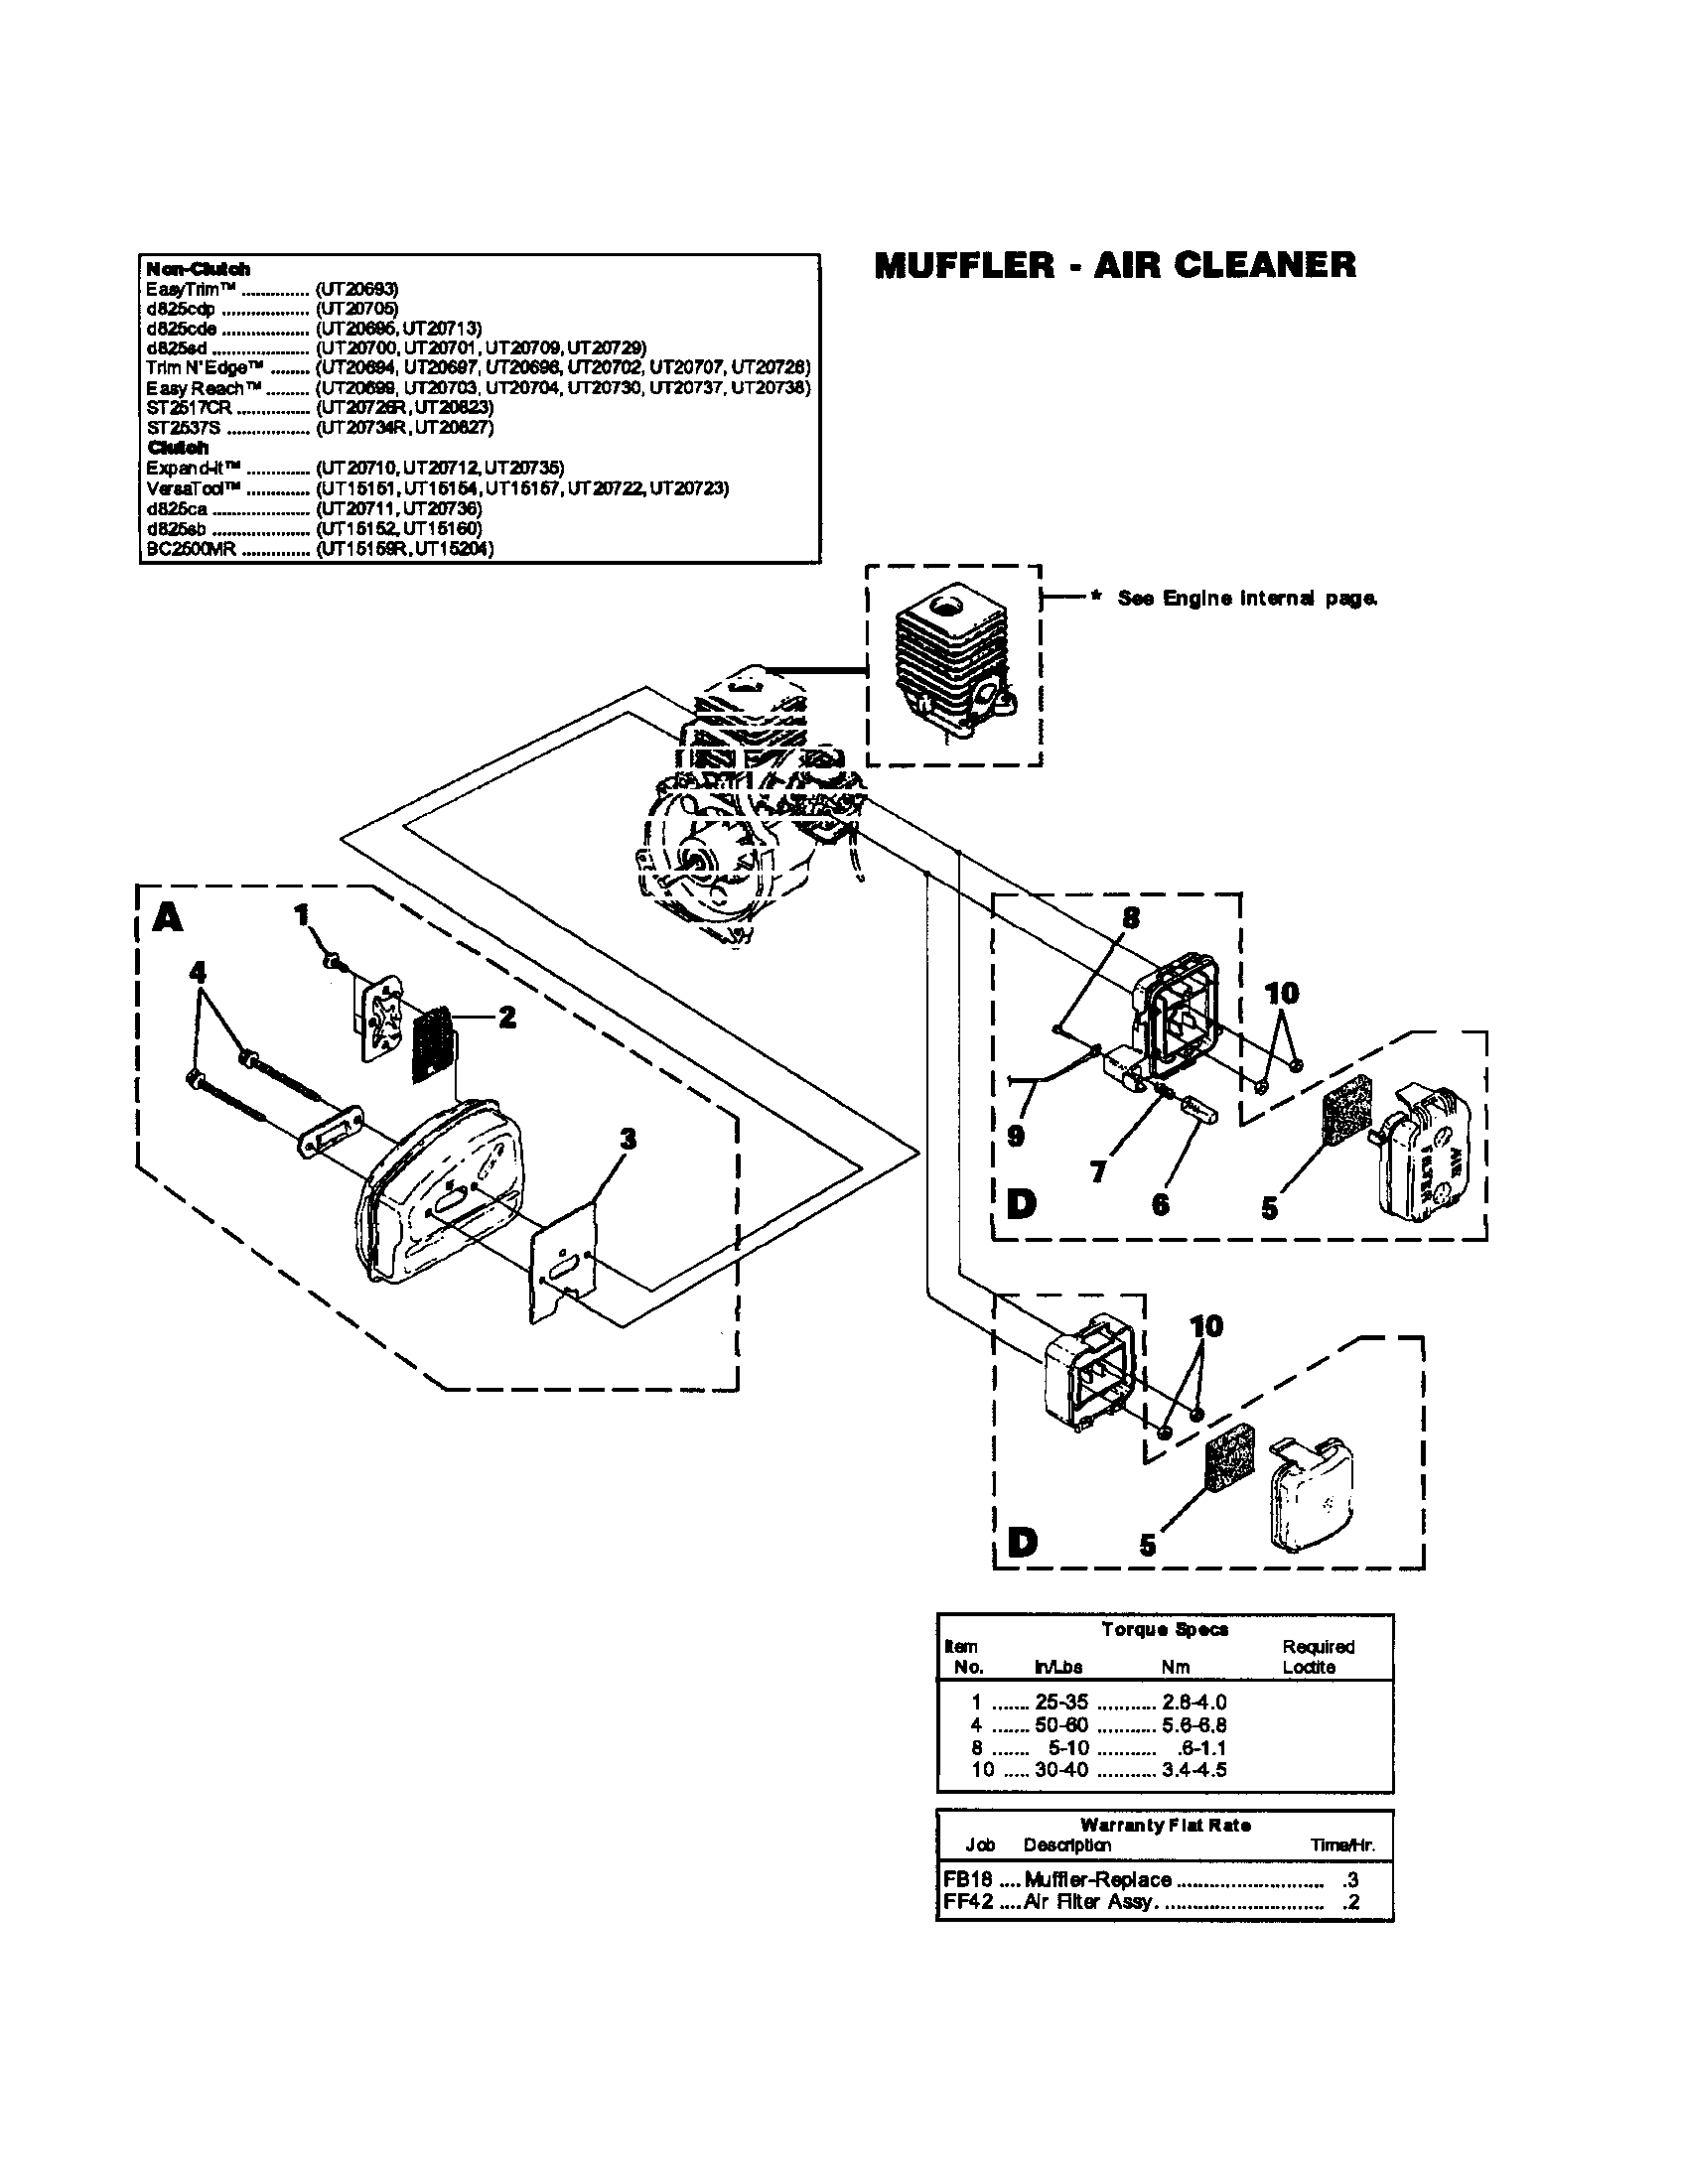 MUFFLER/AIR CLEANER Diagram & Parts List for Model UT15204